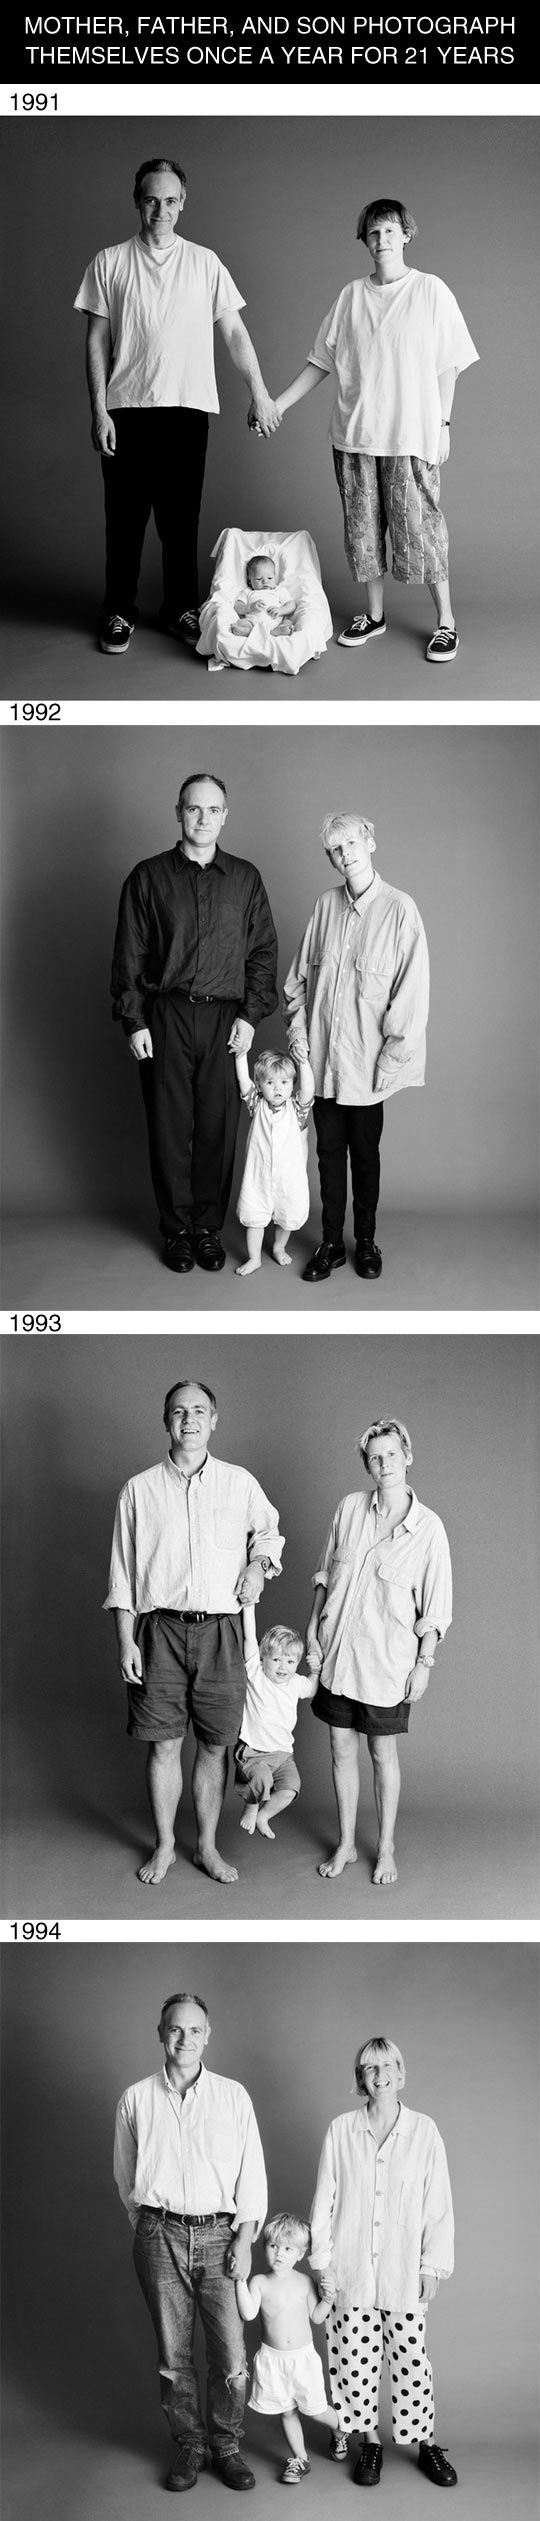 mother, father and son photographed for 21 years…